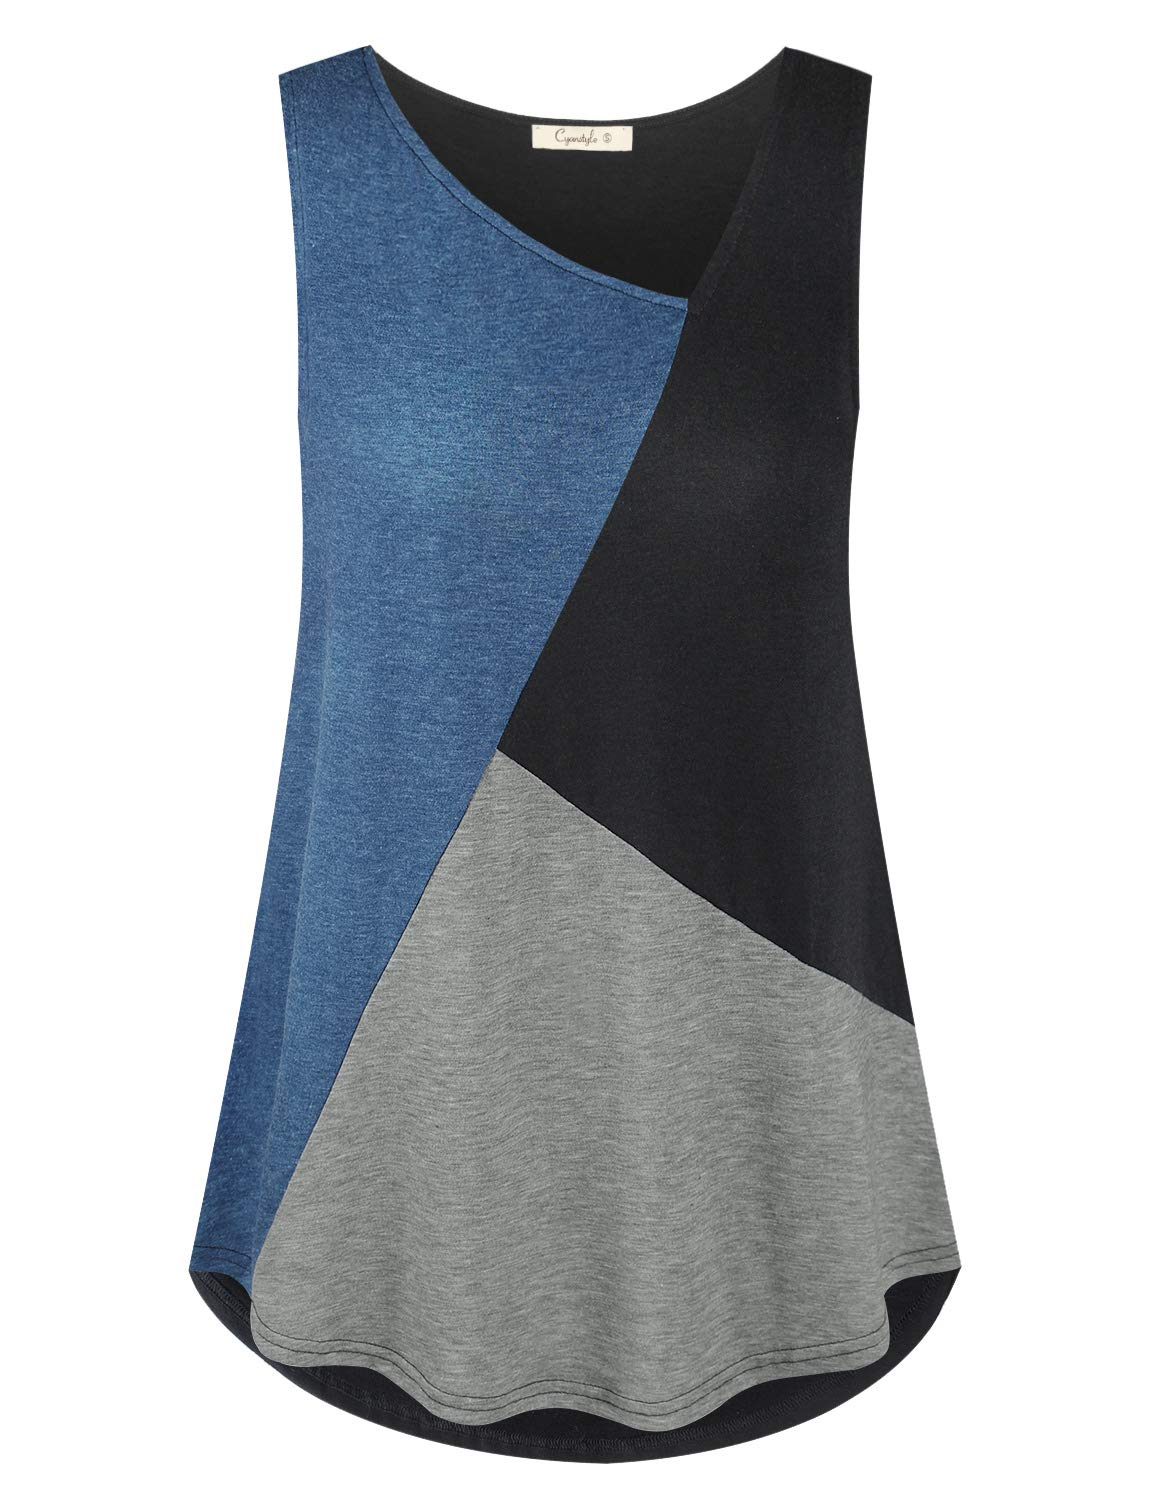 Cyanstyle Women's Casual Sleeveless Patchwork Color Block Loose Fits Tank Tunic Tops